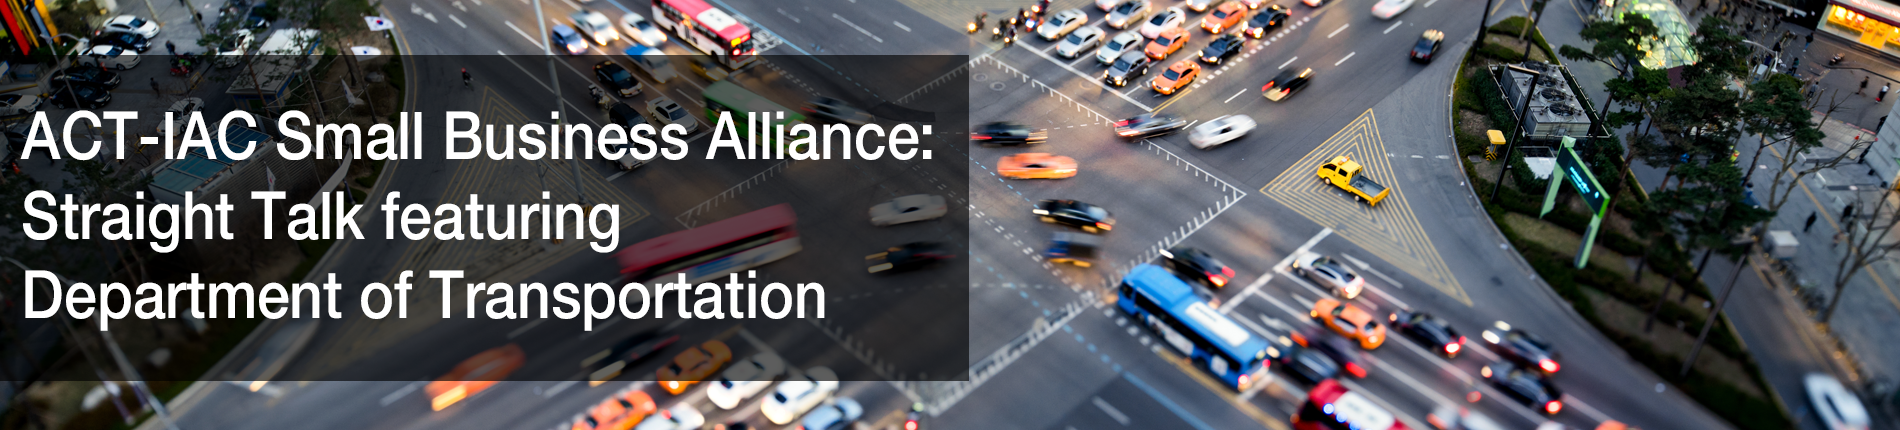 ACT-IAC Small Business Alliance Straight Talk featuring Department of Transportation 12/23